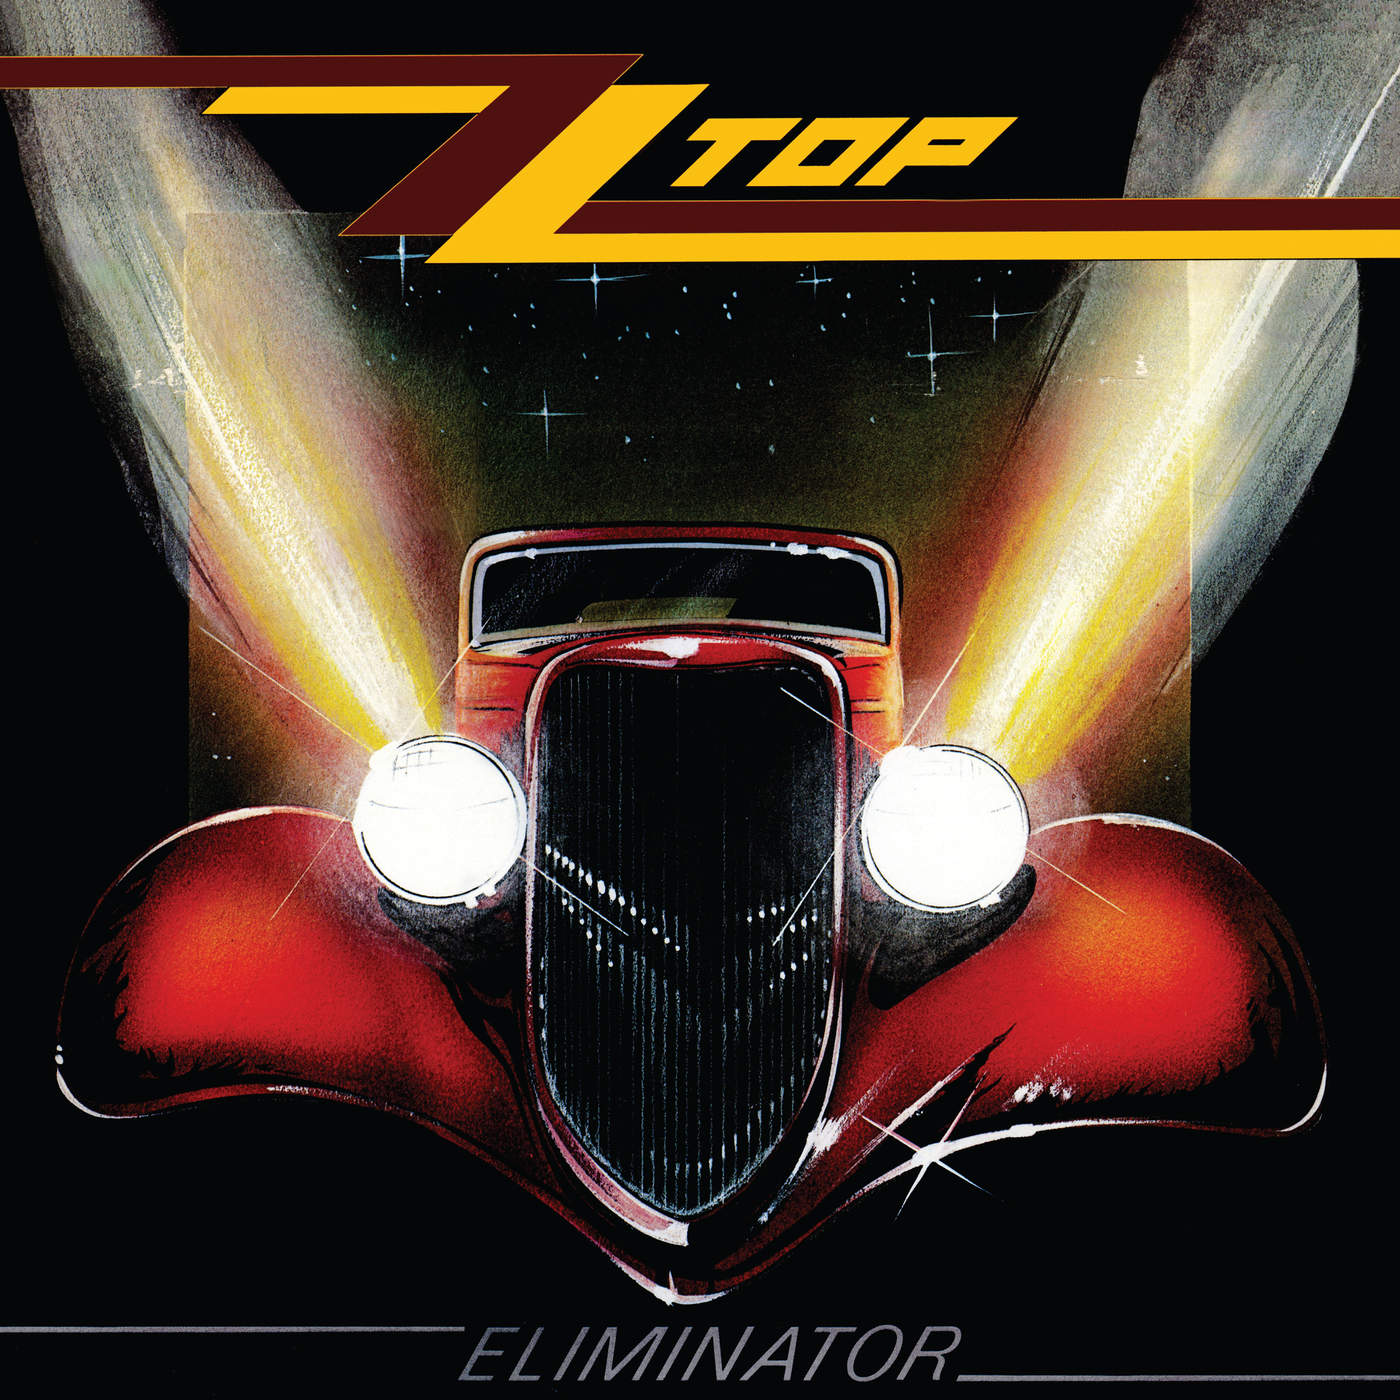 Gimme All Your Lovin' by ZZ Top